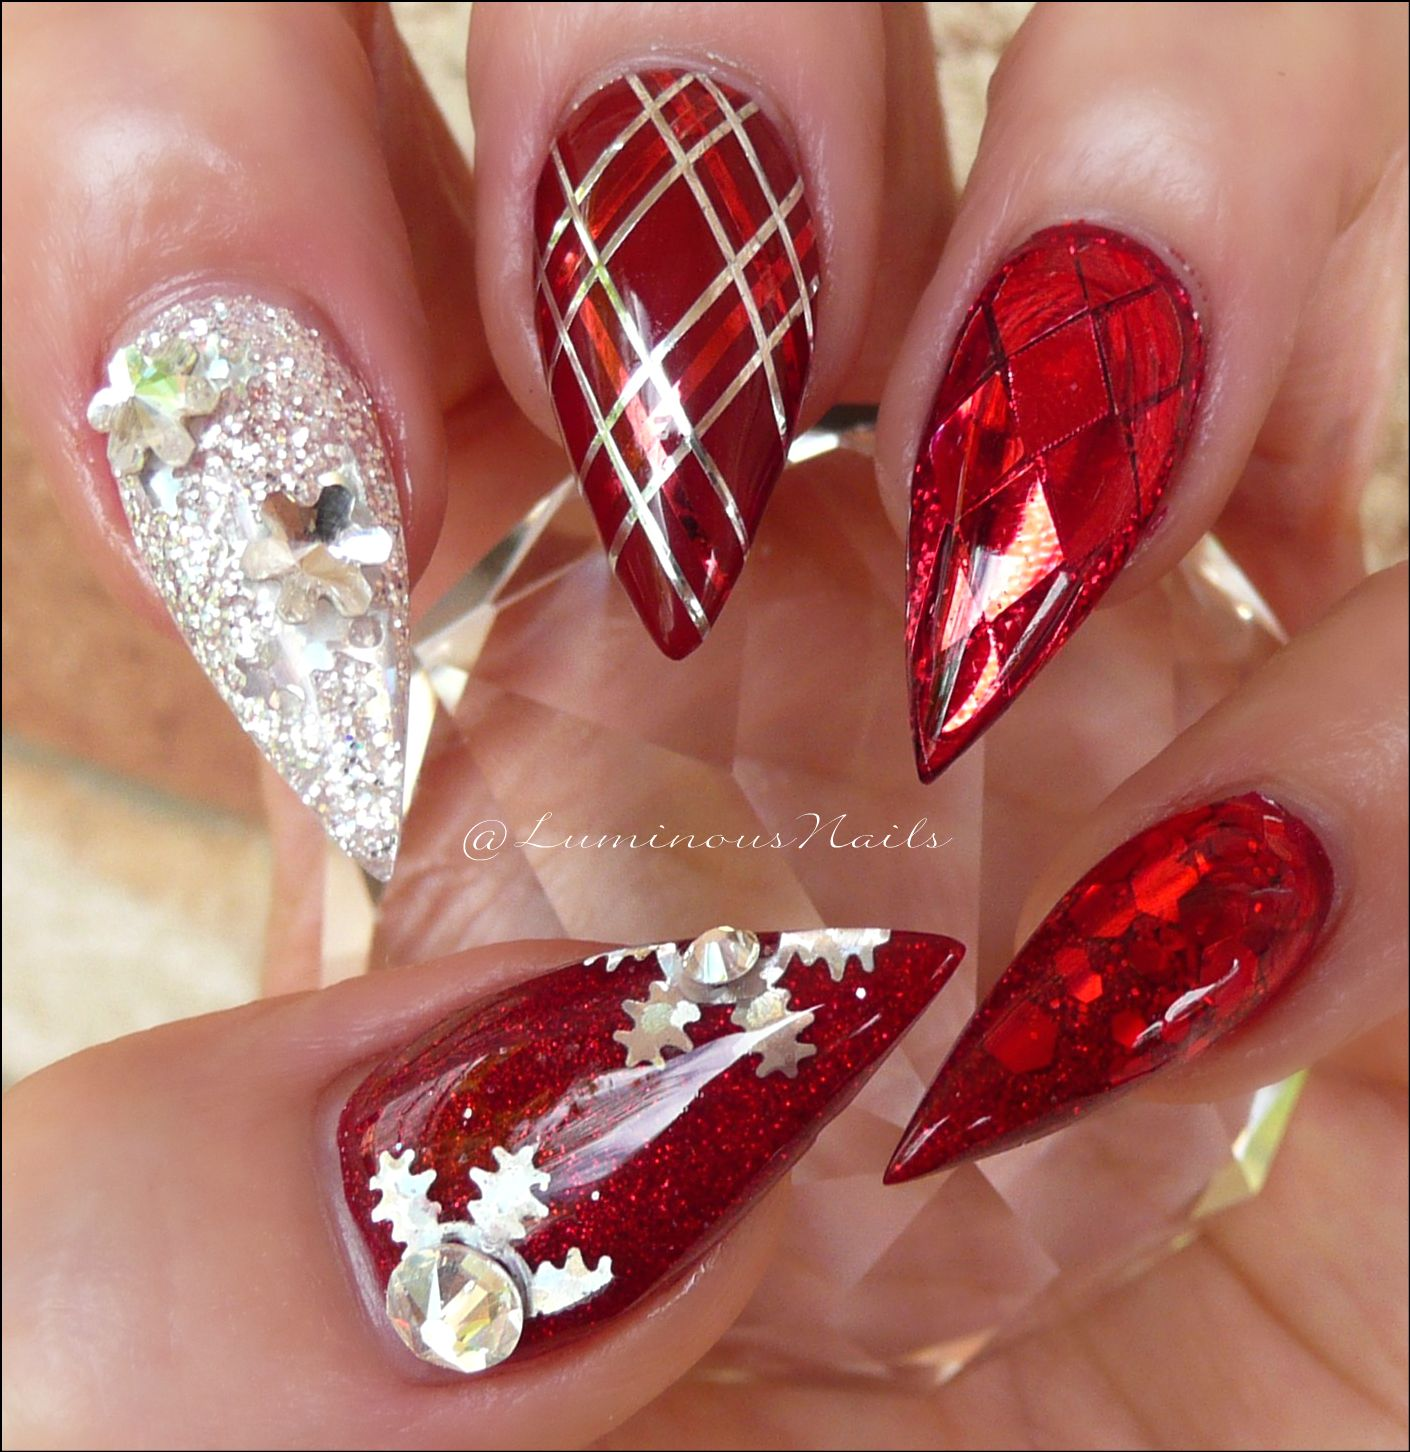 Christmas Nails Designs Coffin: Christmas Nails... Red & Silver Christmas Nails. Acrylic